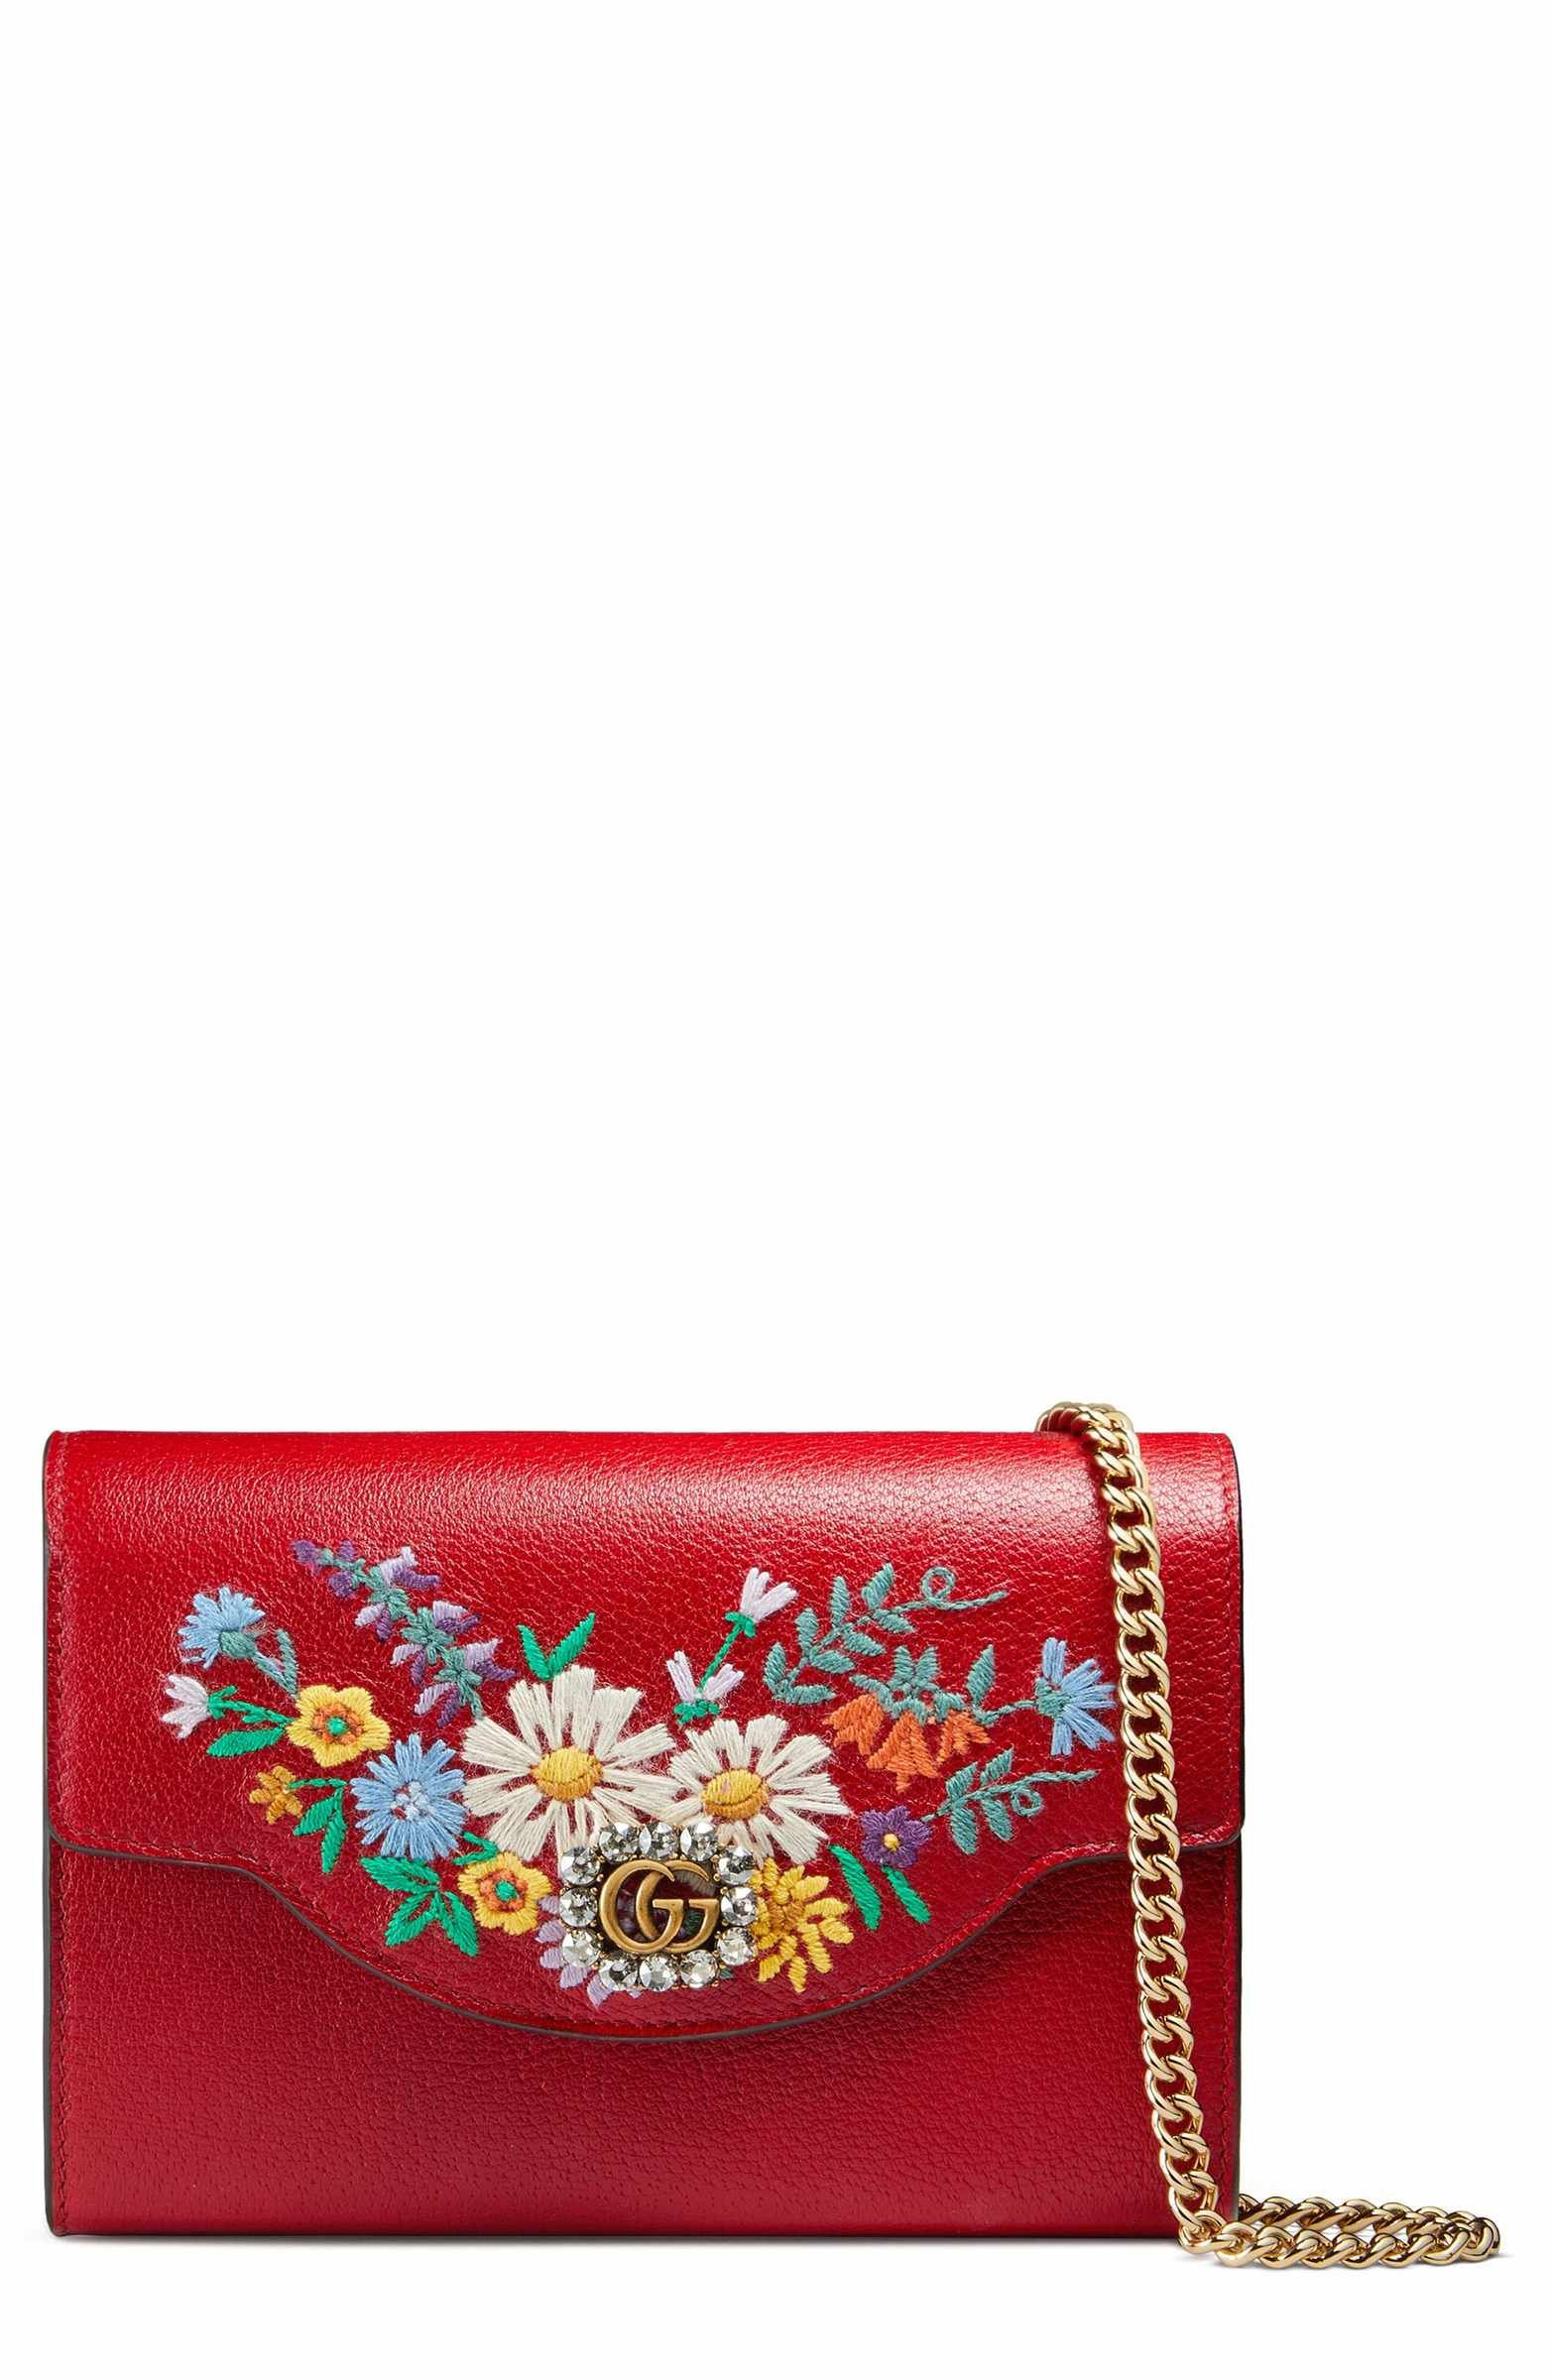 46d54eccba Main Image - Gucci Embroidered Floral Leather Wallet on a Chain ...